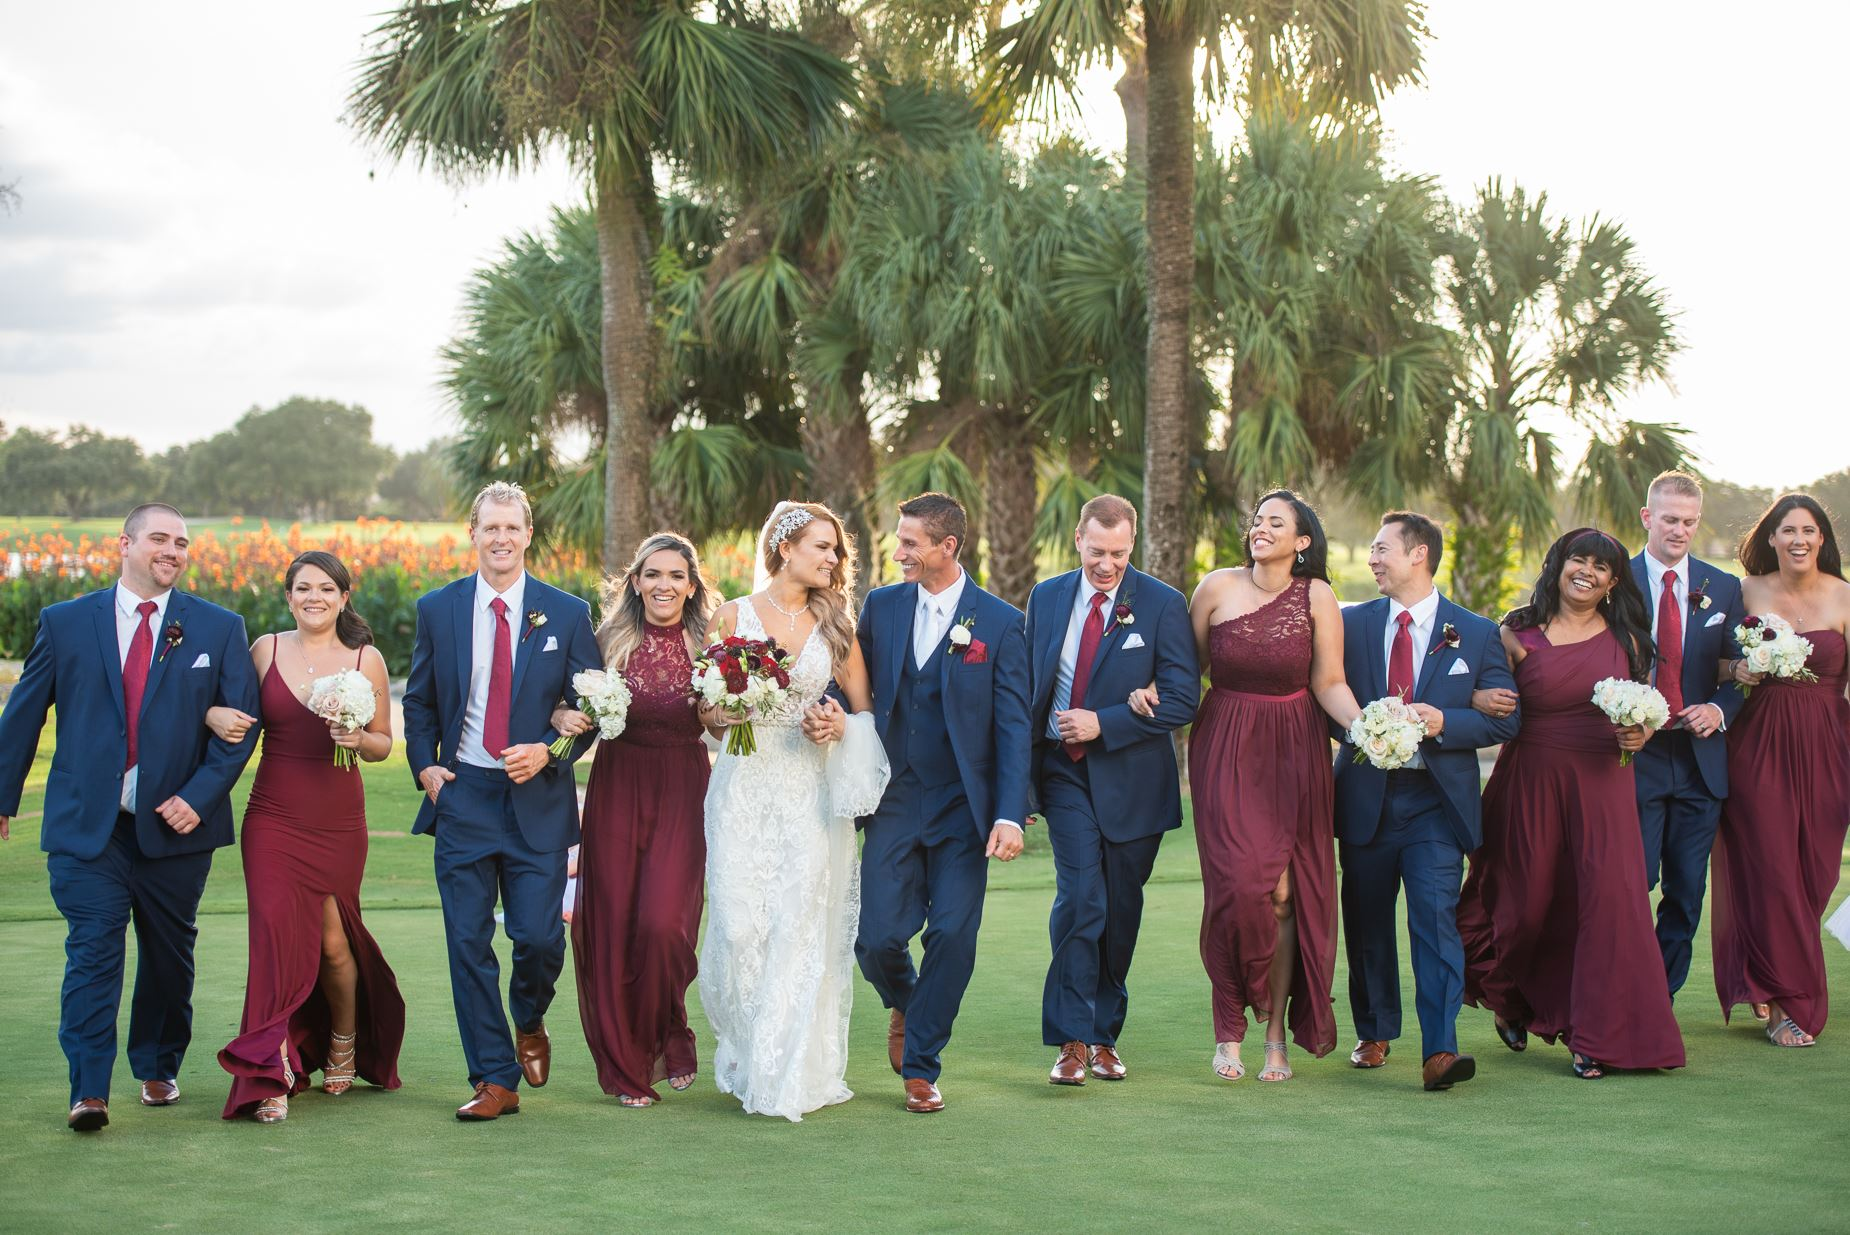 Wedding party in dark red dresses and navy suits walking Mission Inn golf course